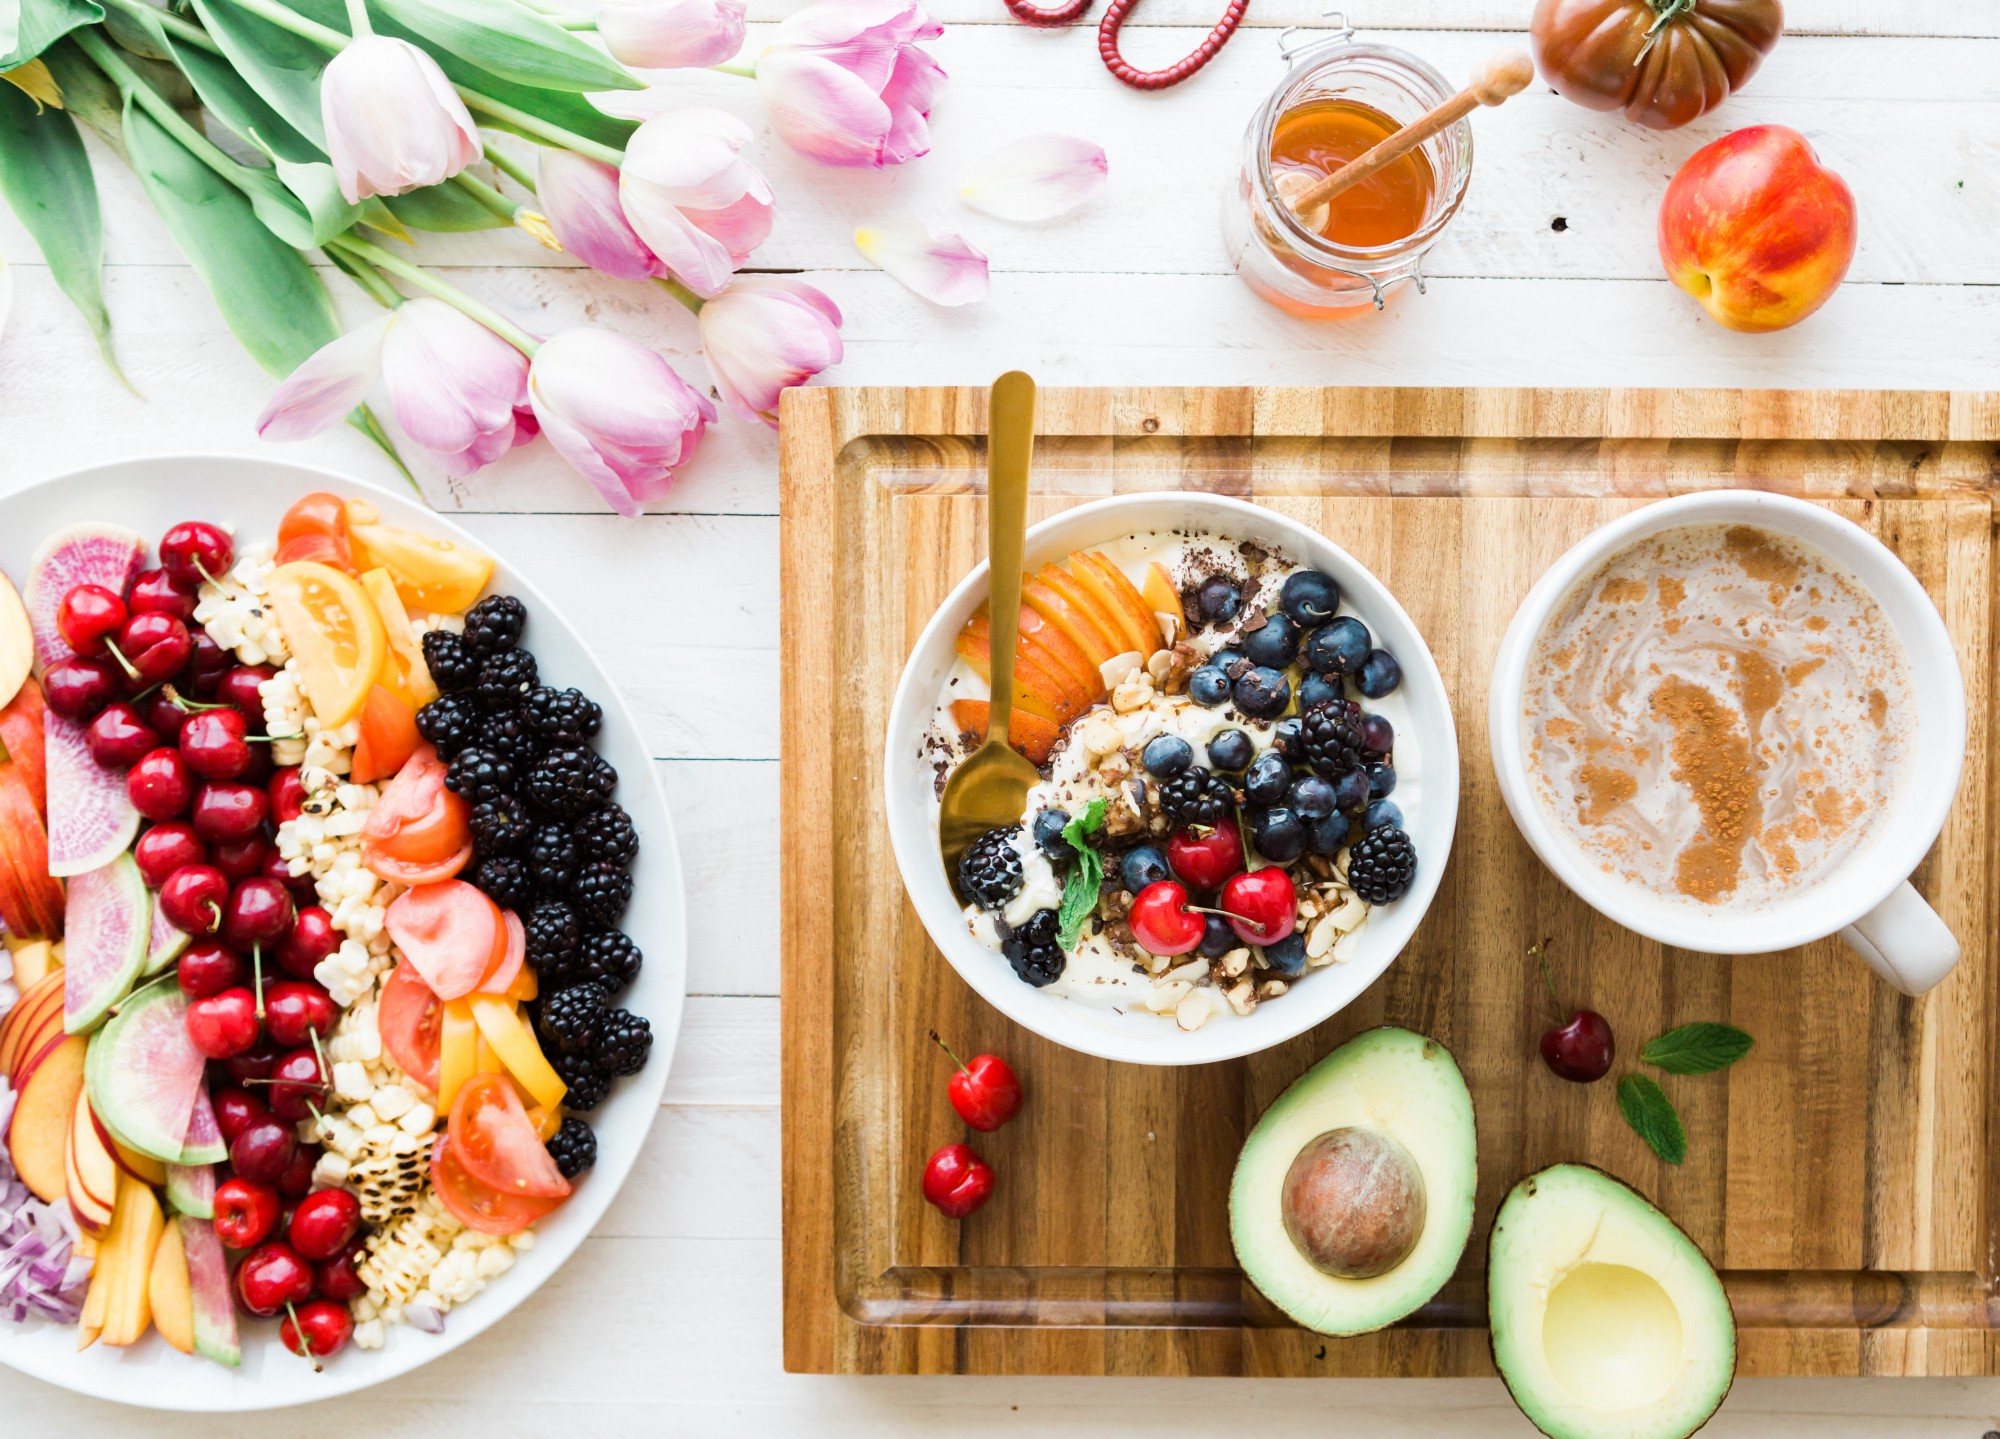 Think You're Eating Healthy? This Will Make You Think Again